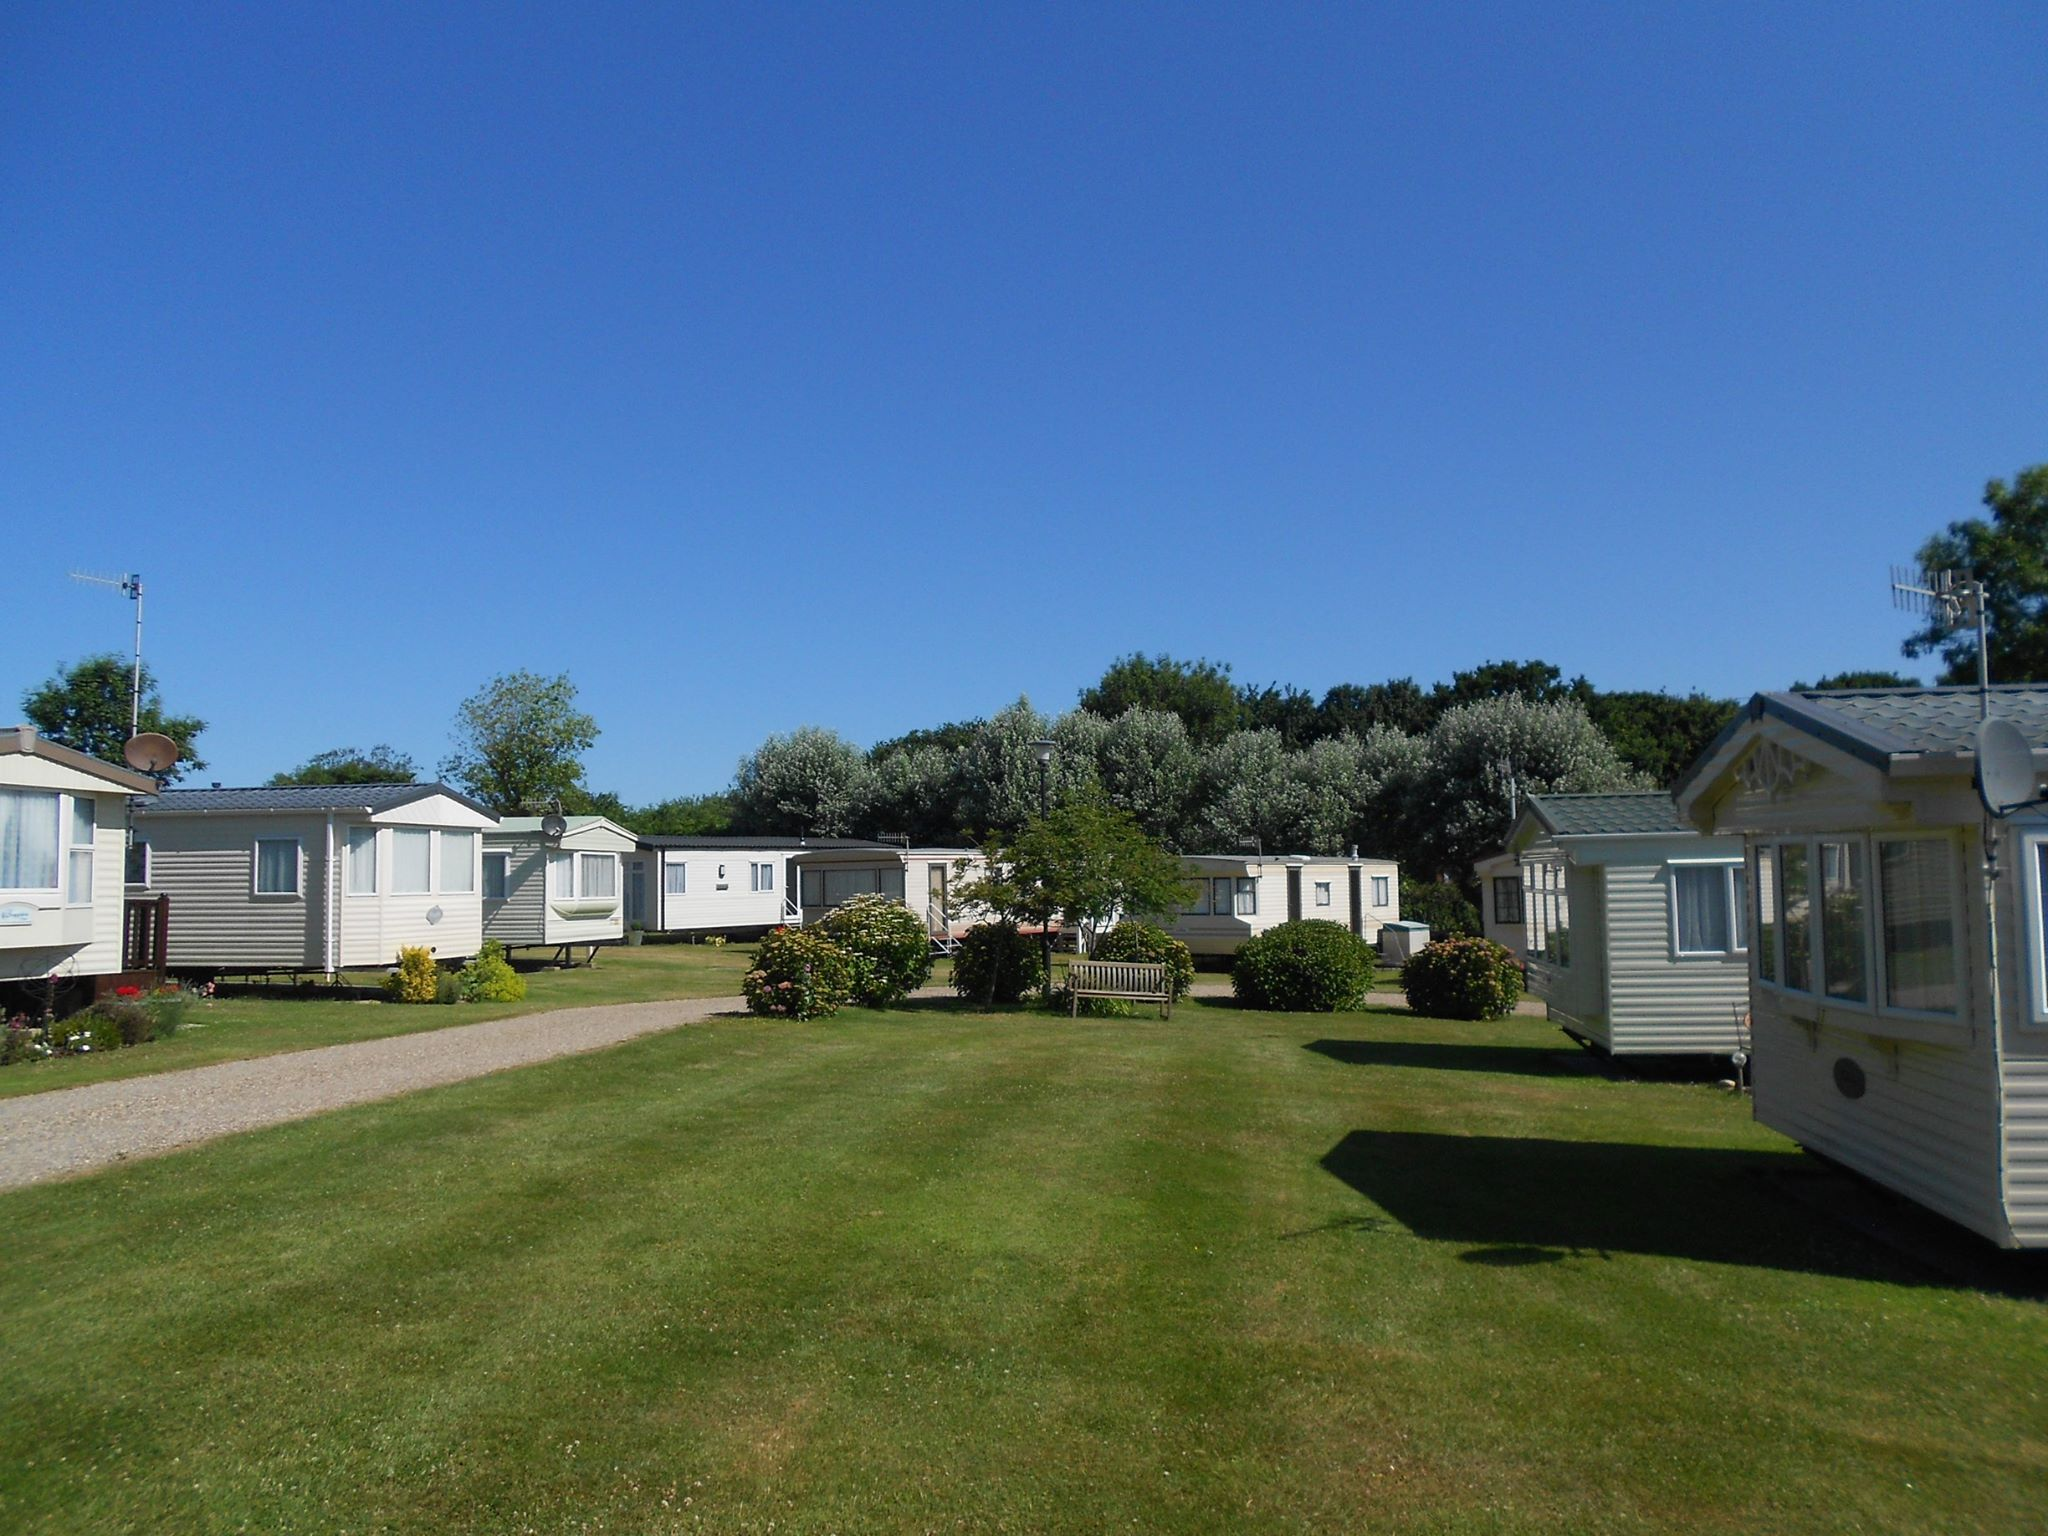 Poplars Caravan Chalet Park Is In A Lovely Part Of Norfolk At East Runton Near Cromer The Park Has Tast In 2020 Seaside Cottage Holiday Cottage Holidays In England